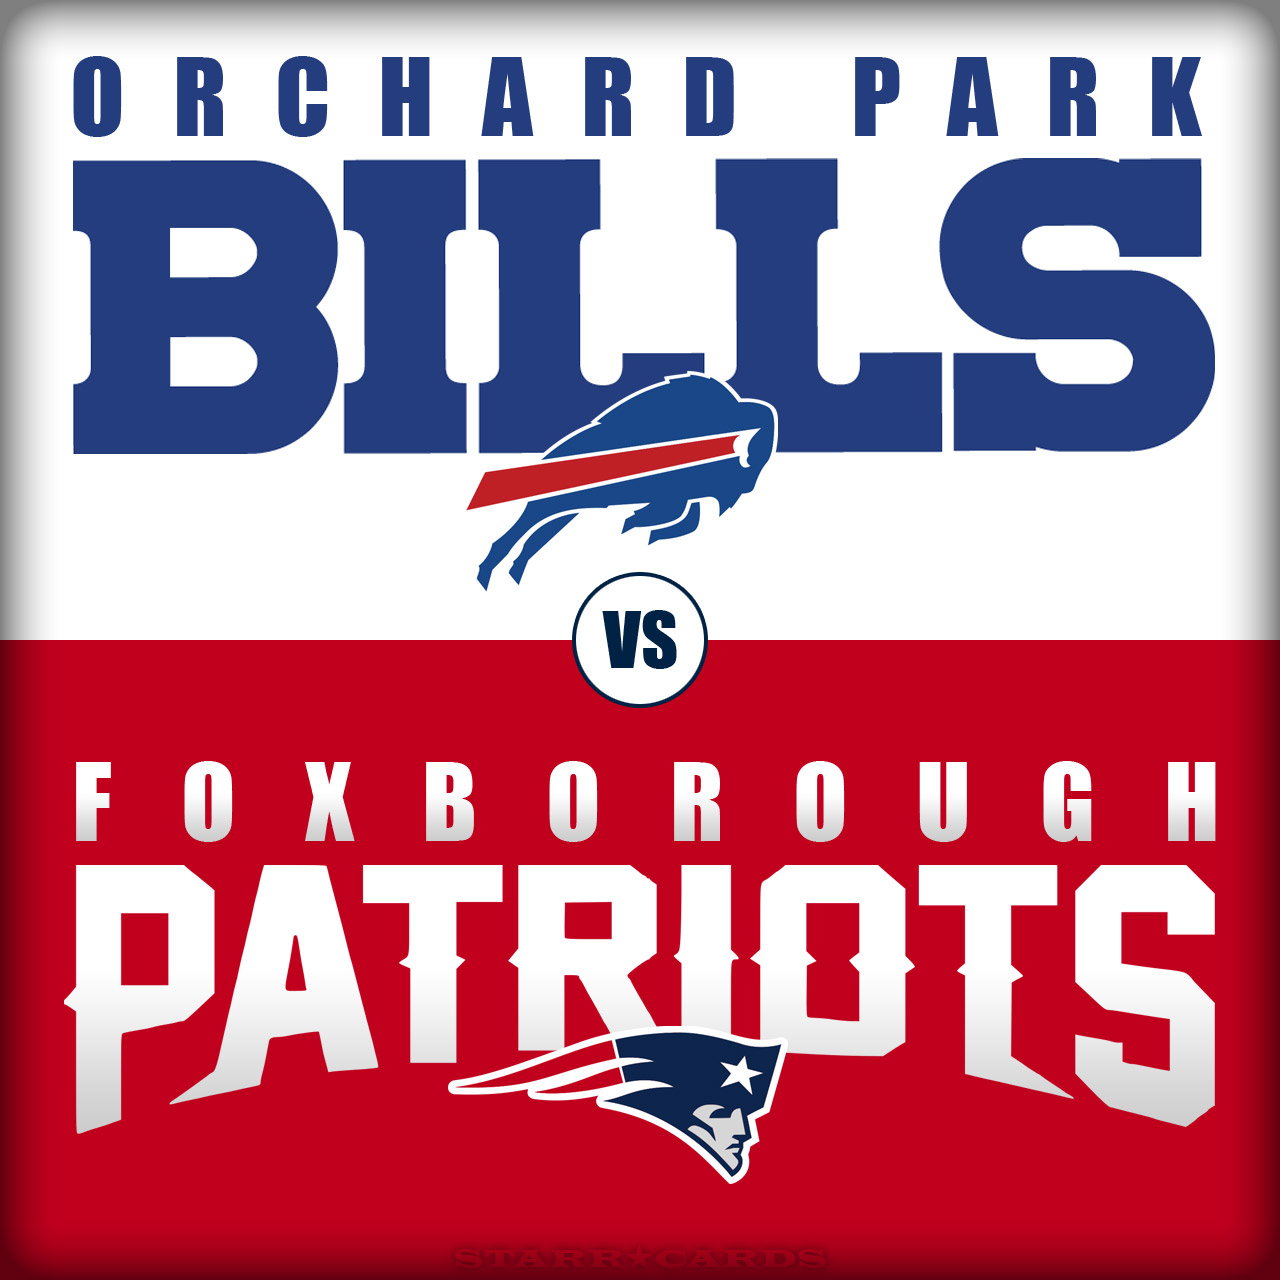 Buffalo Bills vs New England Patriots, or Orchard Park Bills vs Foxborough Patriots?